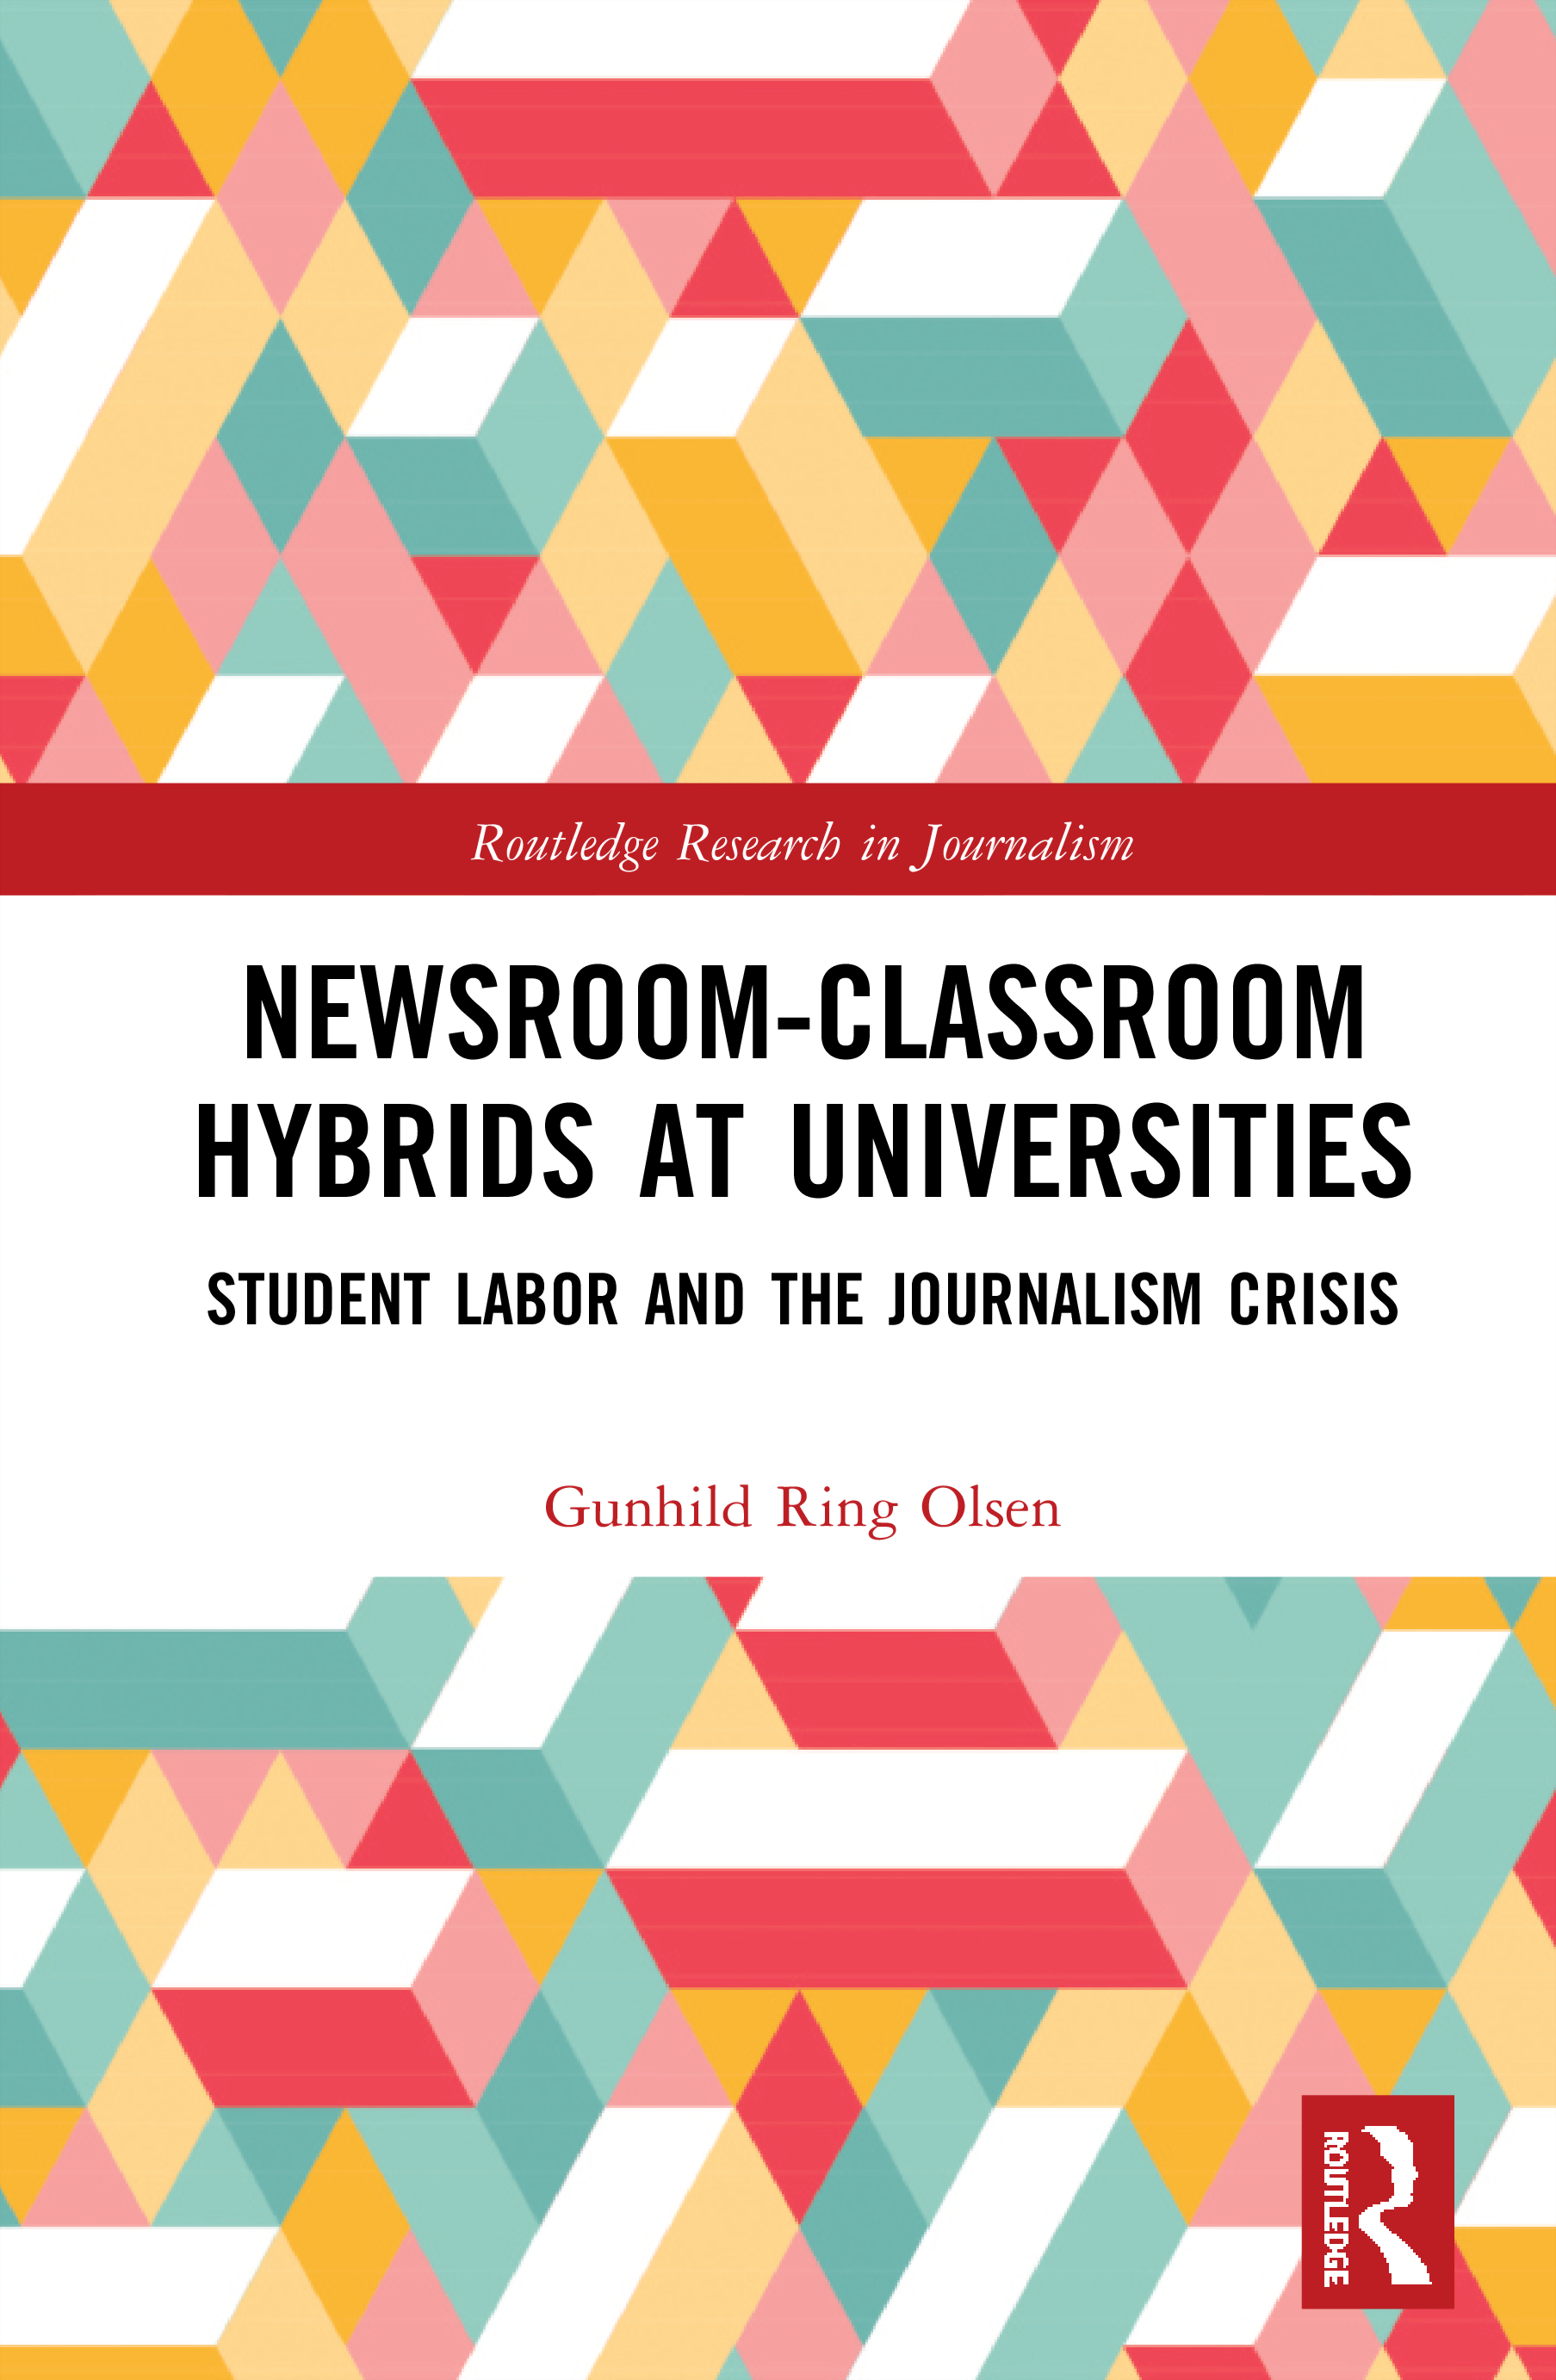 Newsroom-Classroom Hybrids at Universities: Student Labor and the Journalism Crisis book cover